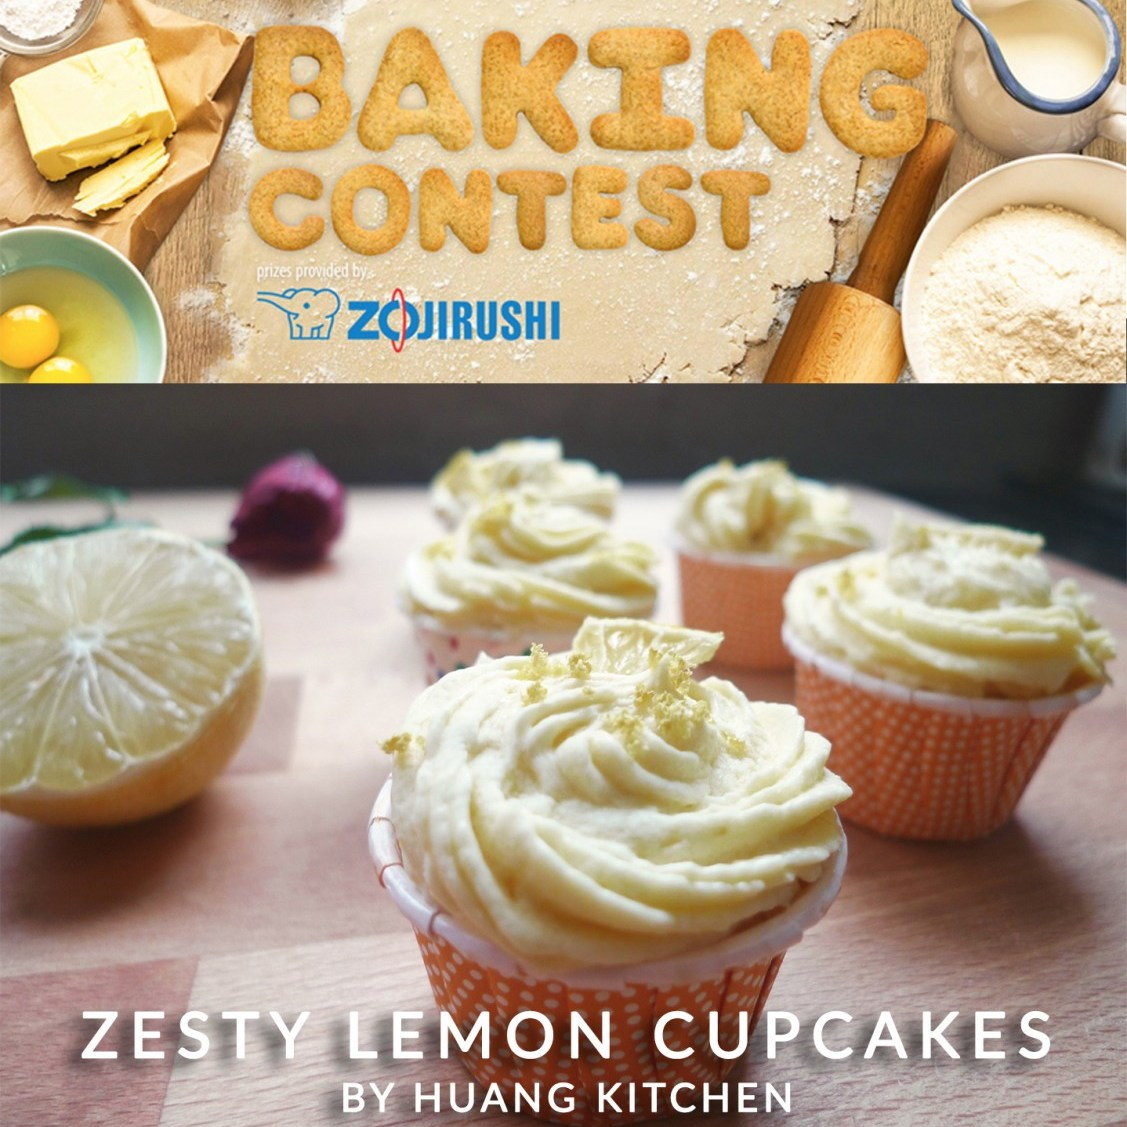 Huang Kitchen Second Prize In Zojirushi Baking Contest